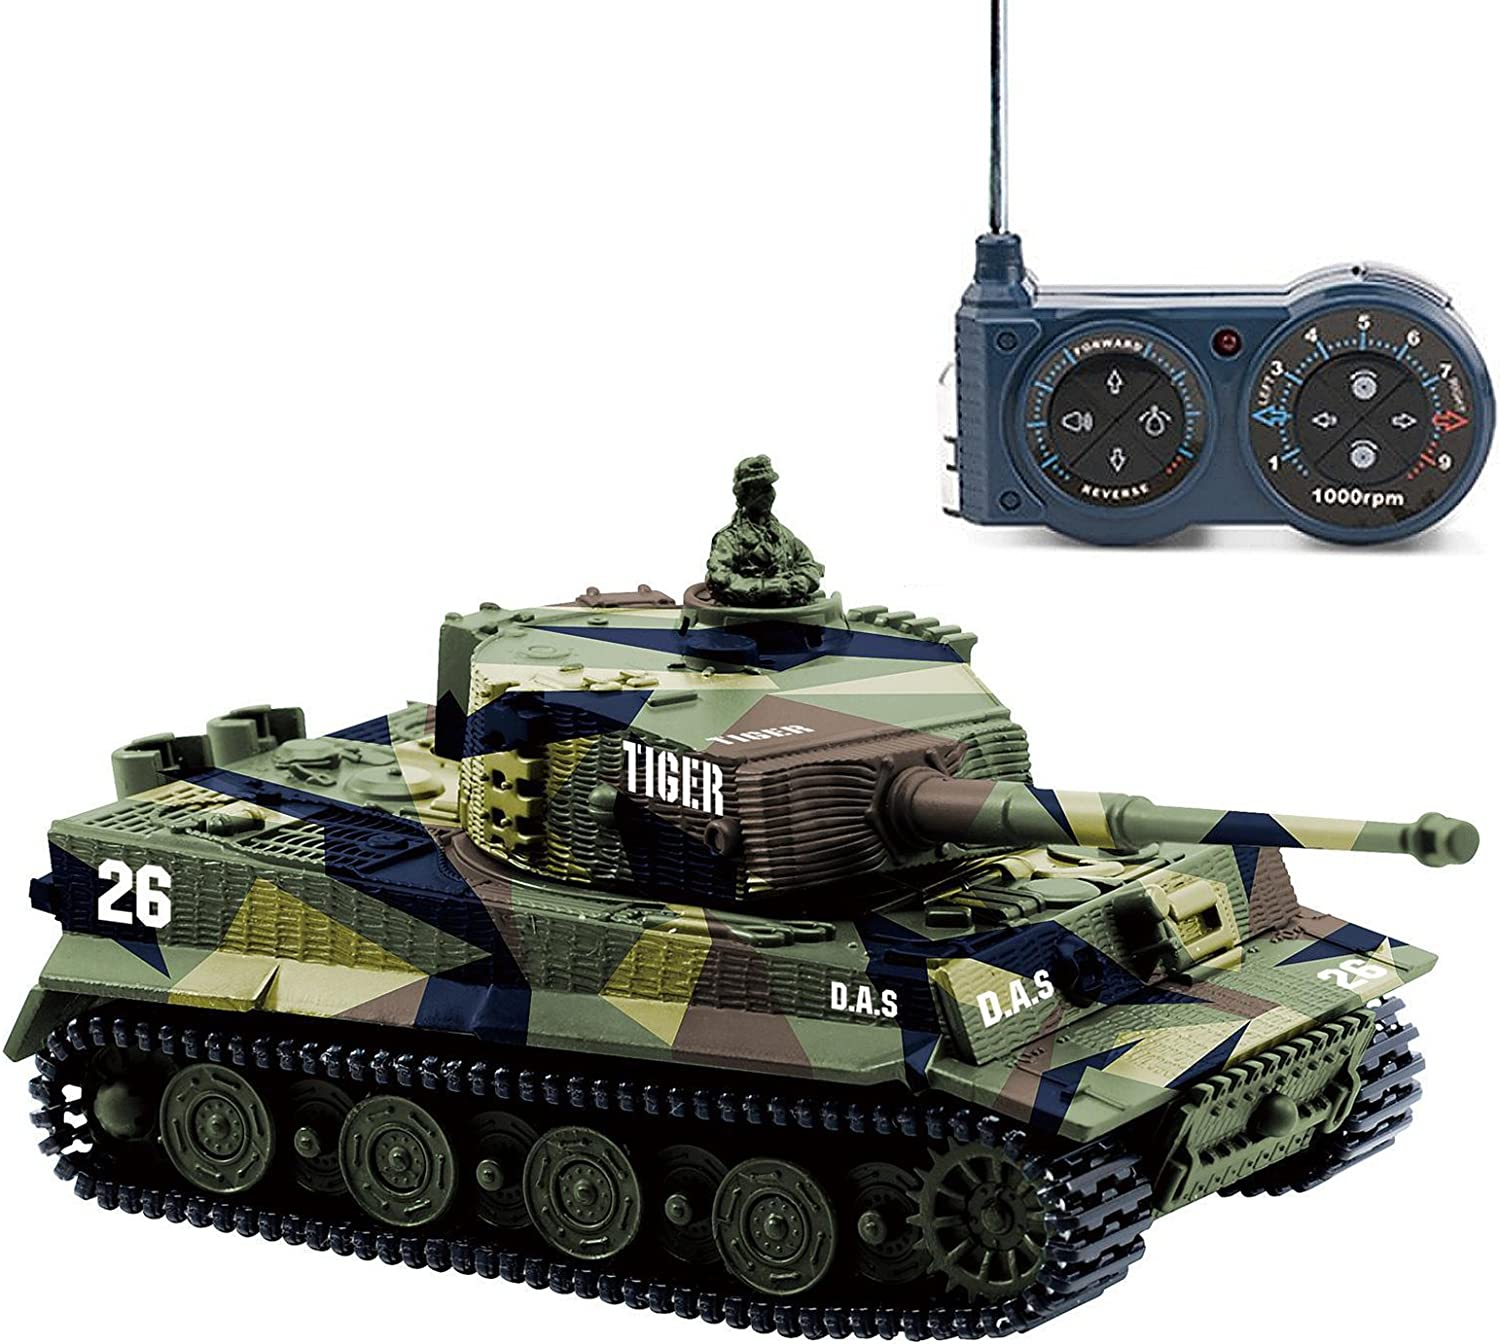 Top 10 Best Remote Control Tanks Battle (2020 Reviews & Buying Guide) 3